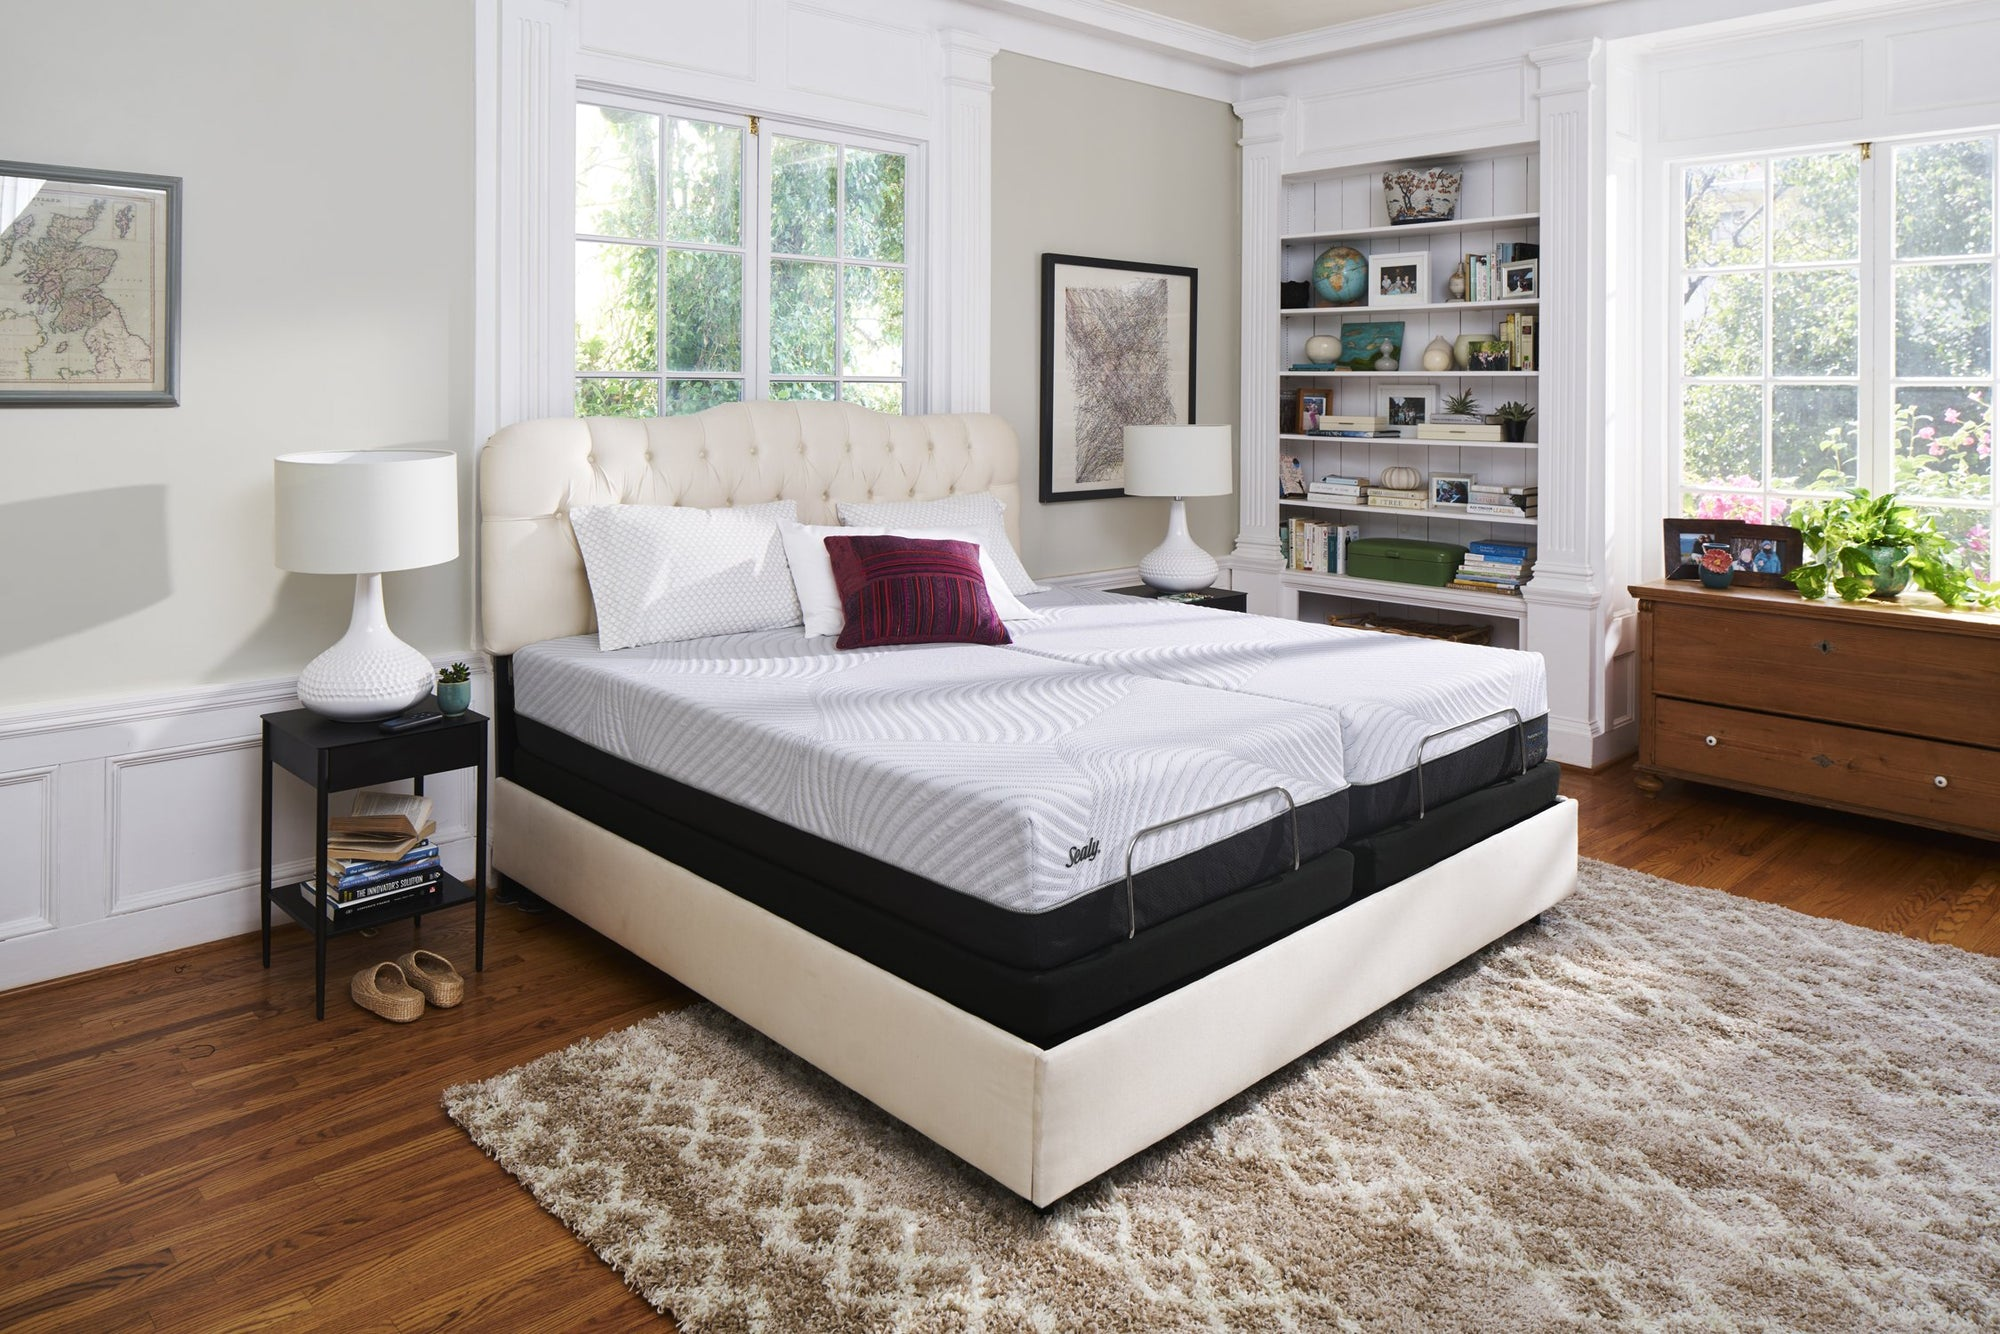 Sealy King Lifestyle Bedroom White